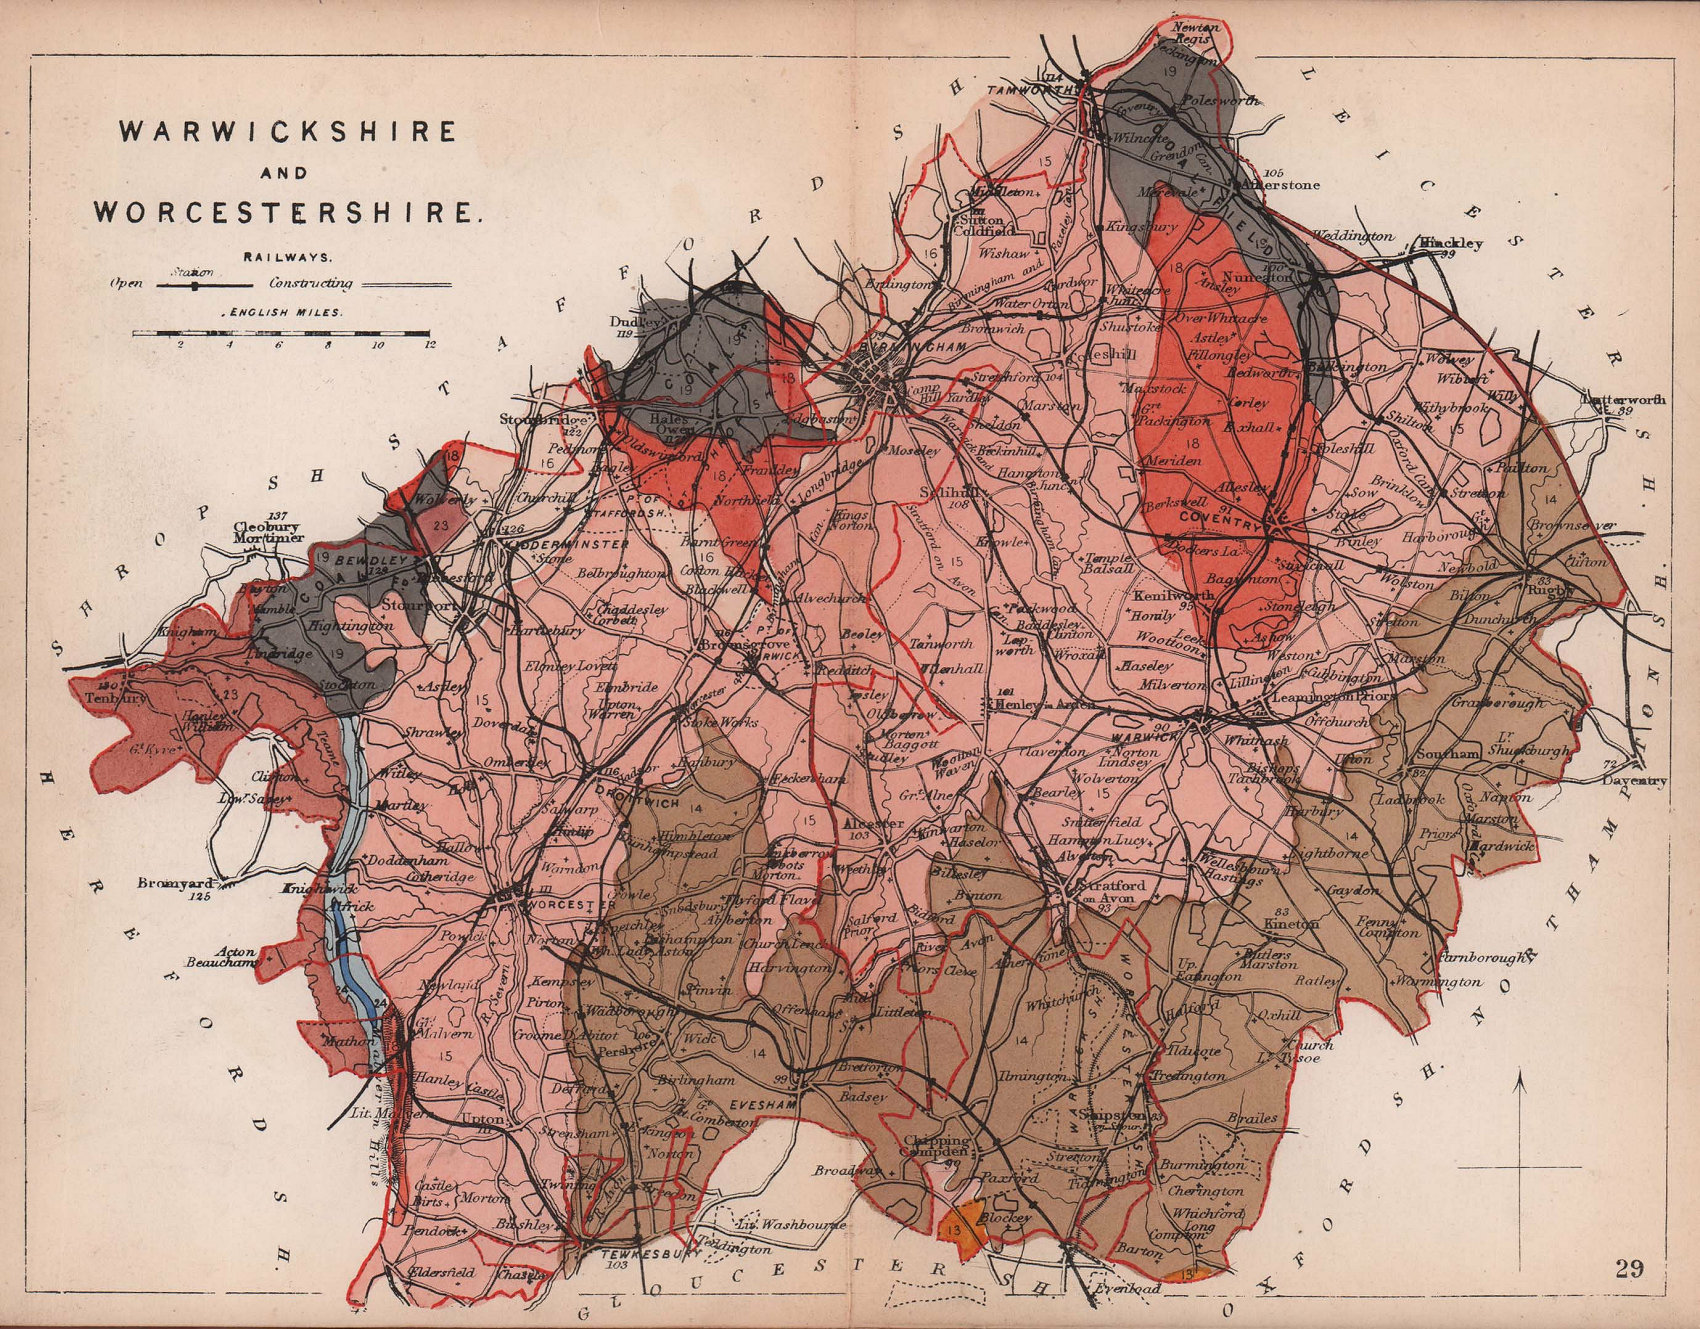 WARWICKSHIRE & WORCESTERSHIRE antique geological county map. James Reynolds 1864